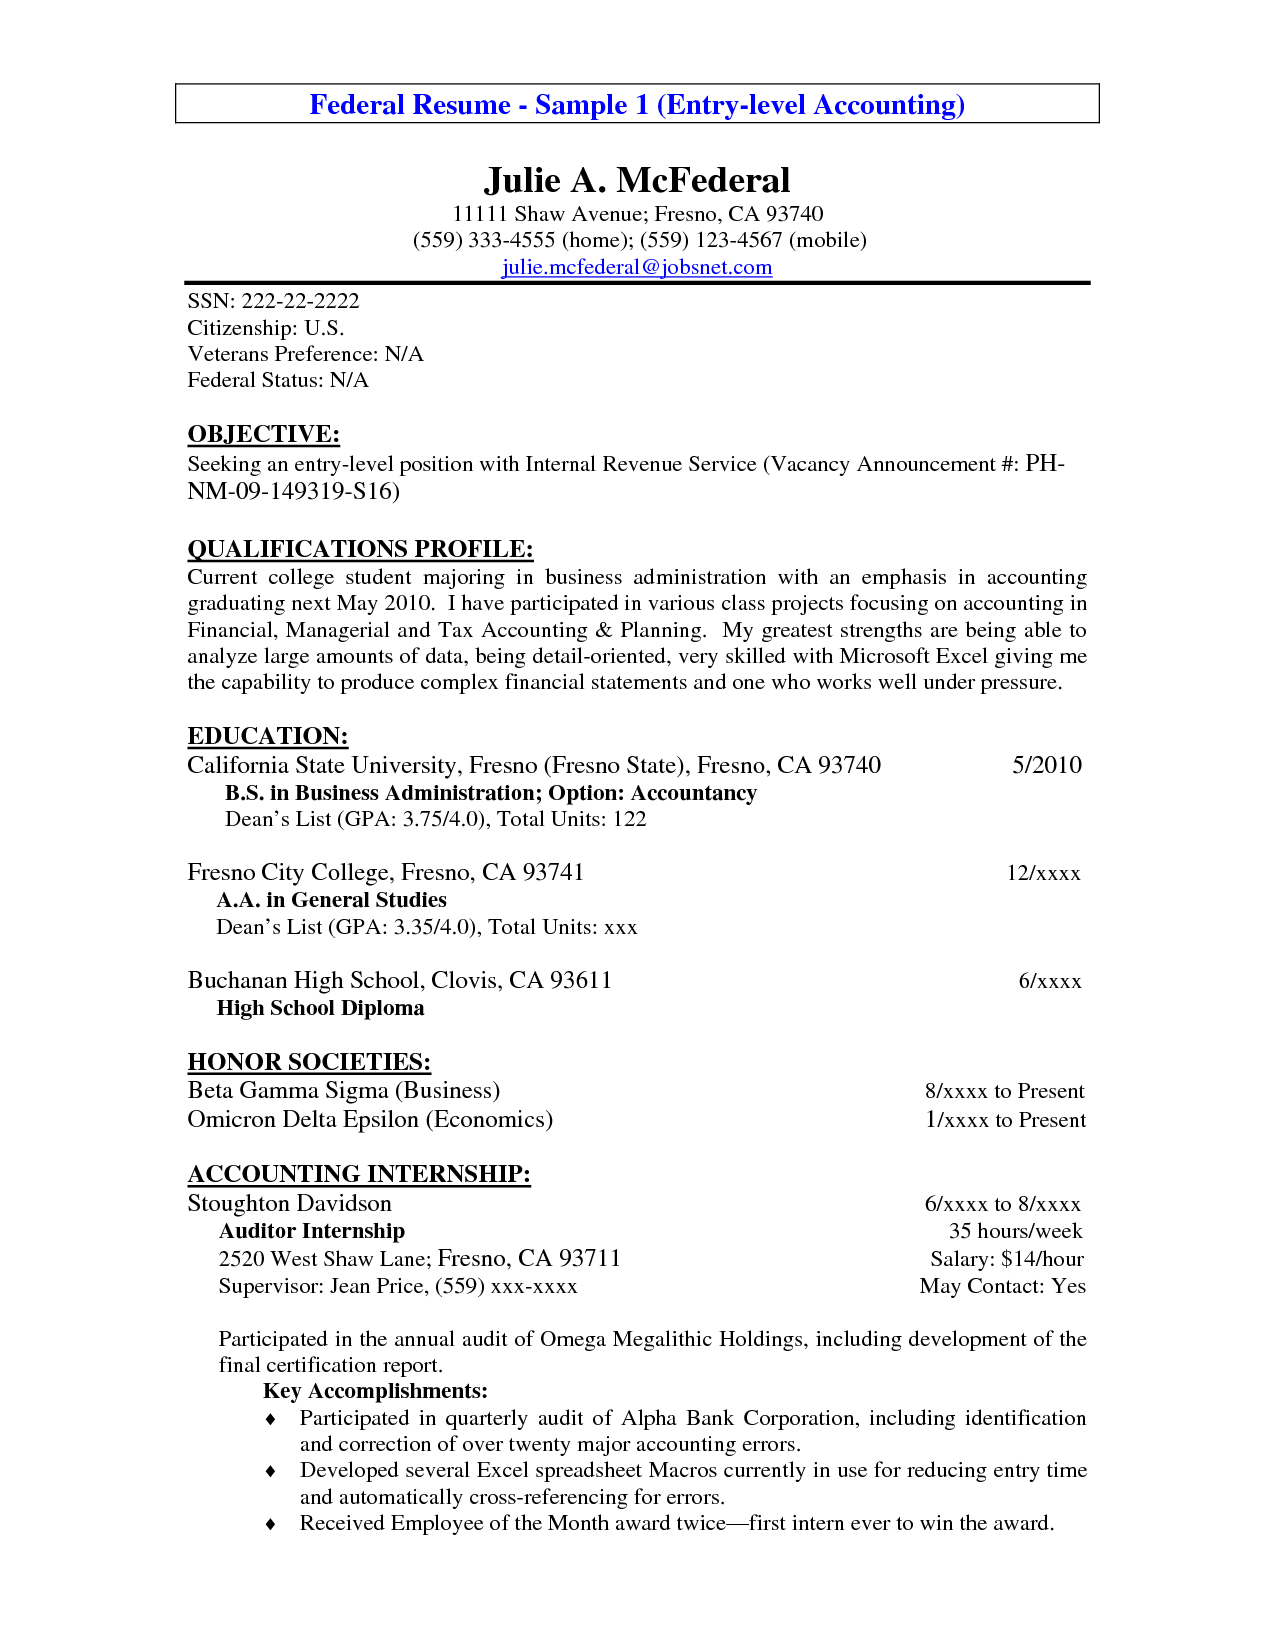 Samples Of Objectives For A Resume Enchanting Ann Debusschere A_Debusschere On Pinterest